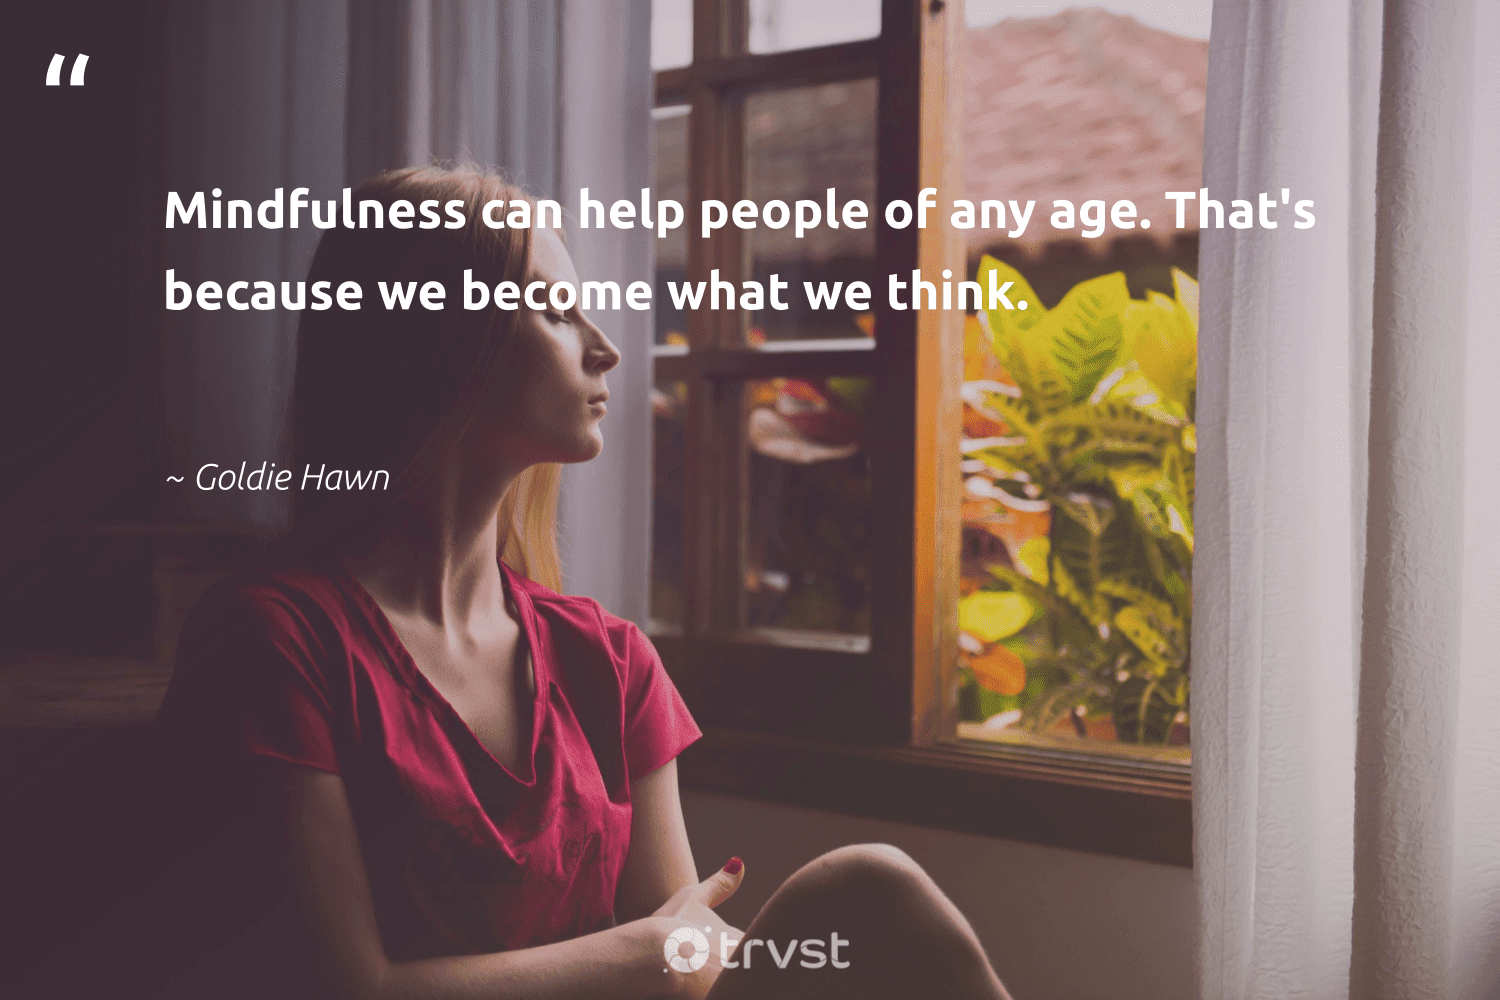 """""""Mindfulness can help people of any age. That's because we become what we think.""""  - Goldie Hawn #trvst #quotes #mindfulness #creativemindset #mentalheatlh #health #gogreen #entrepreneurmindset #positivity #mindset #collectiveaction #goals"""